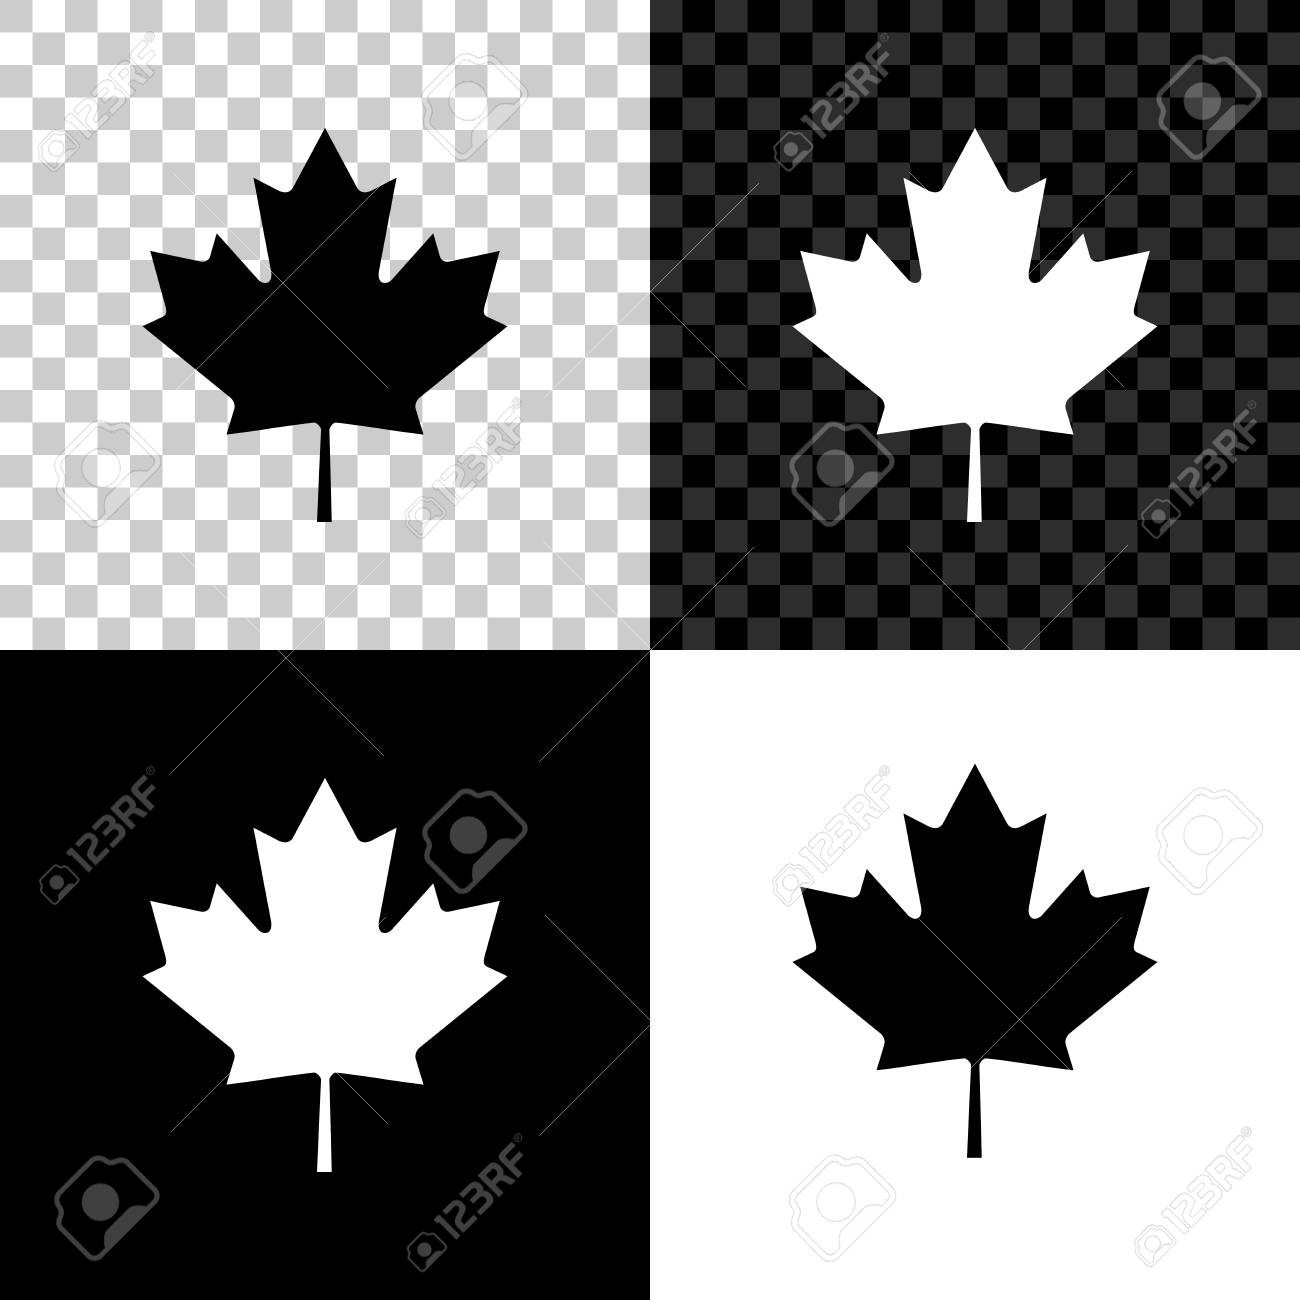 Canadian Maple Leaf Icon Isolated On Black White And Transparent